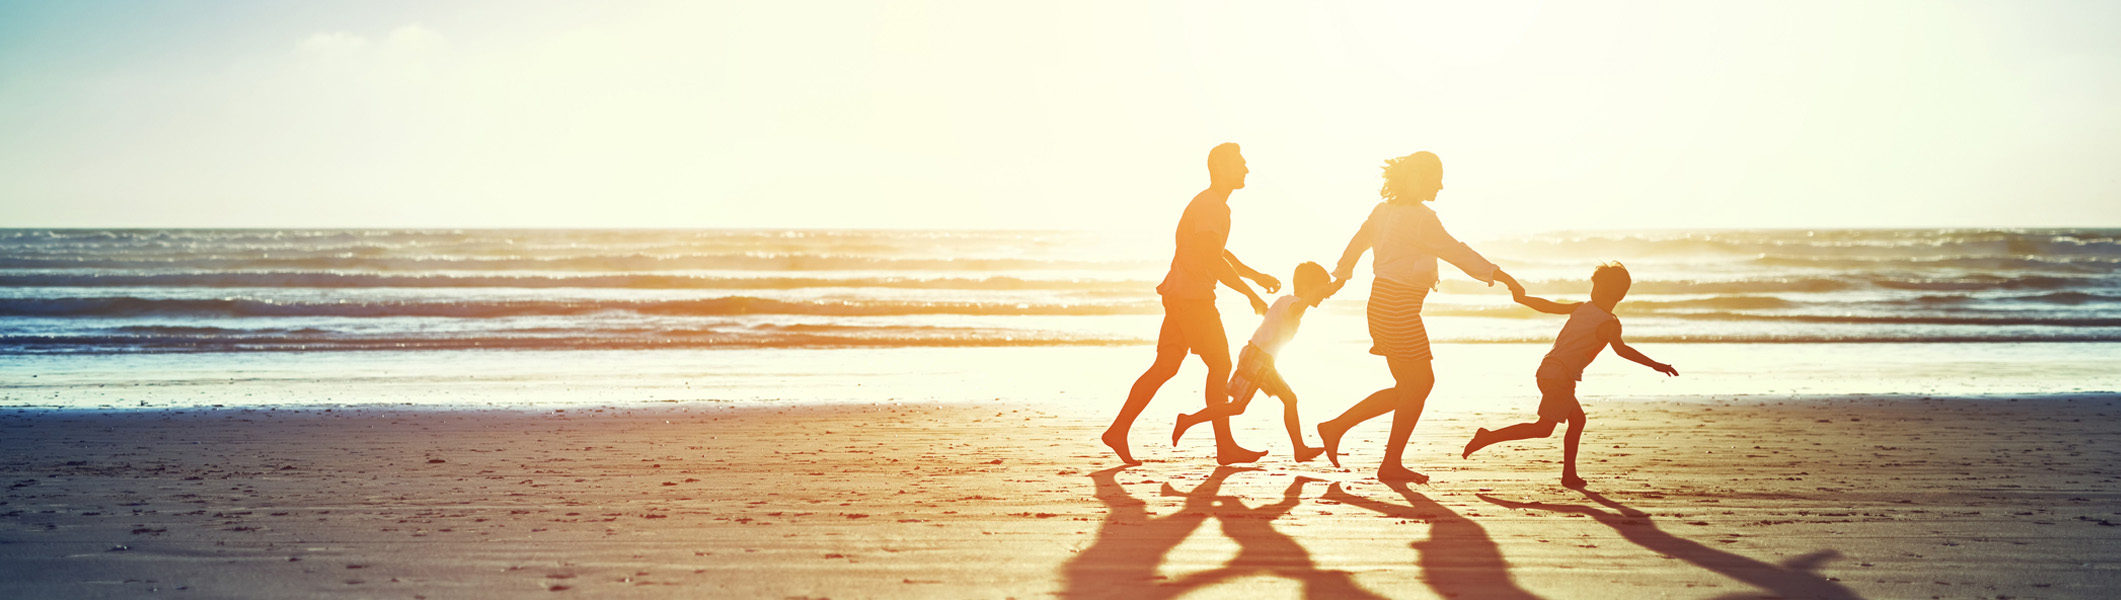 Family walking on beach holding hands, in silhouette from sunset